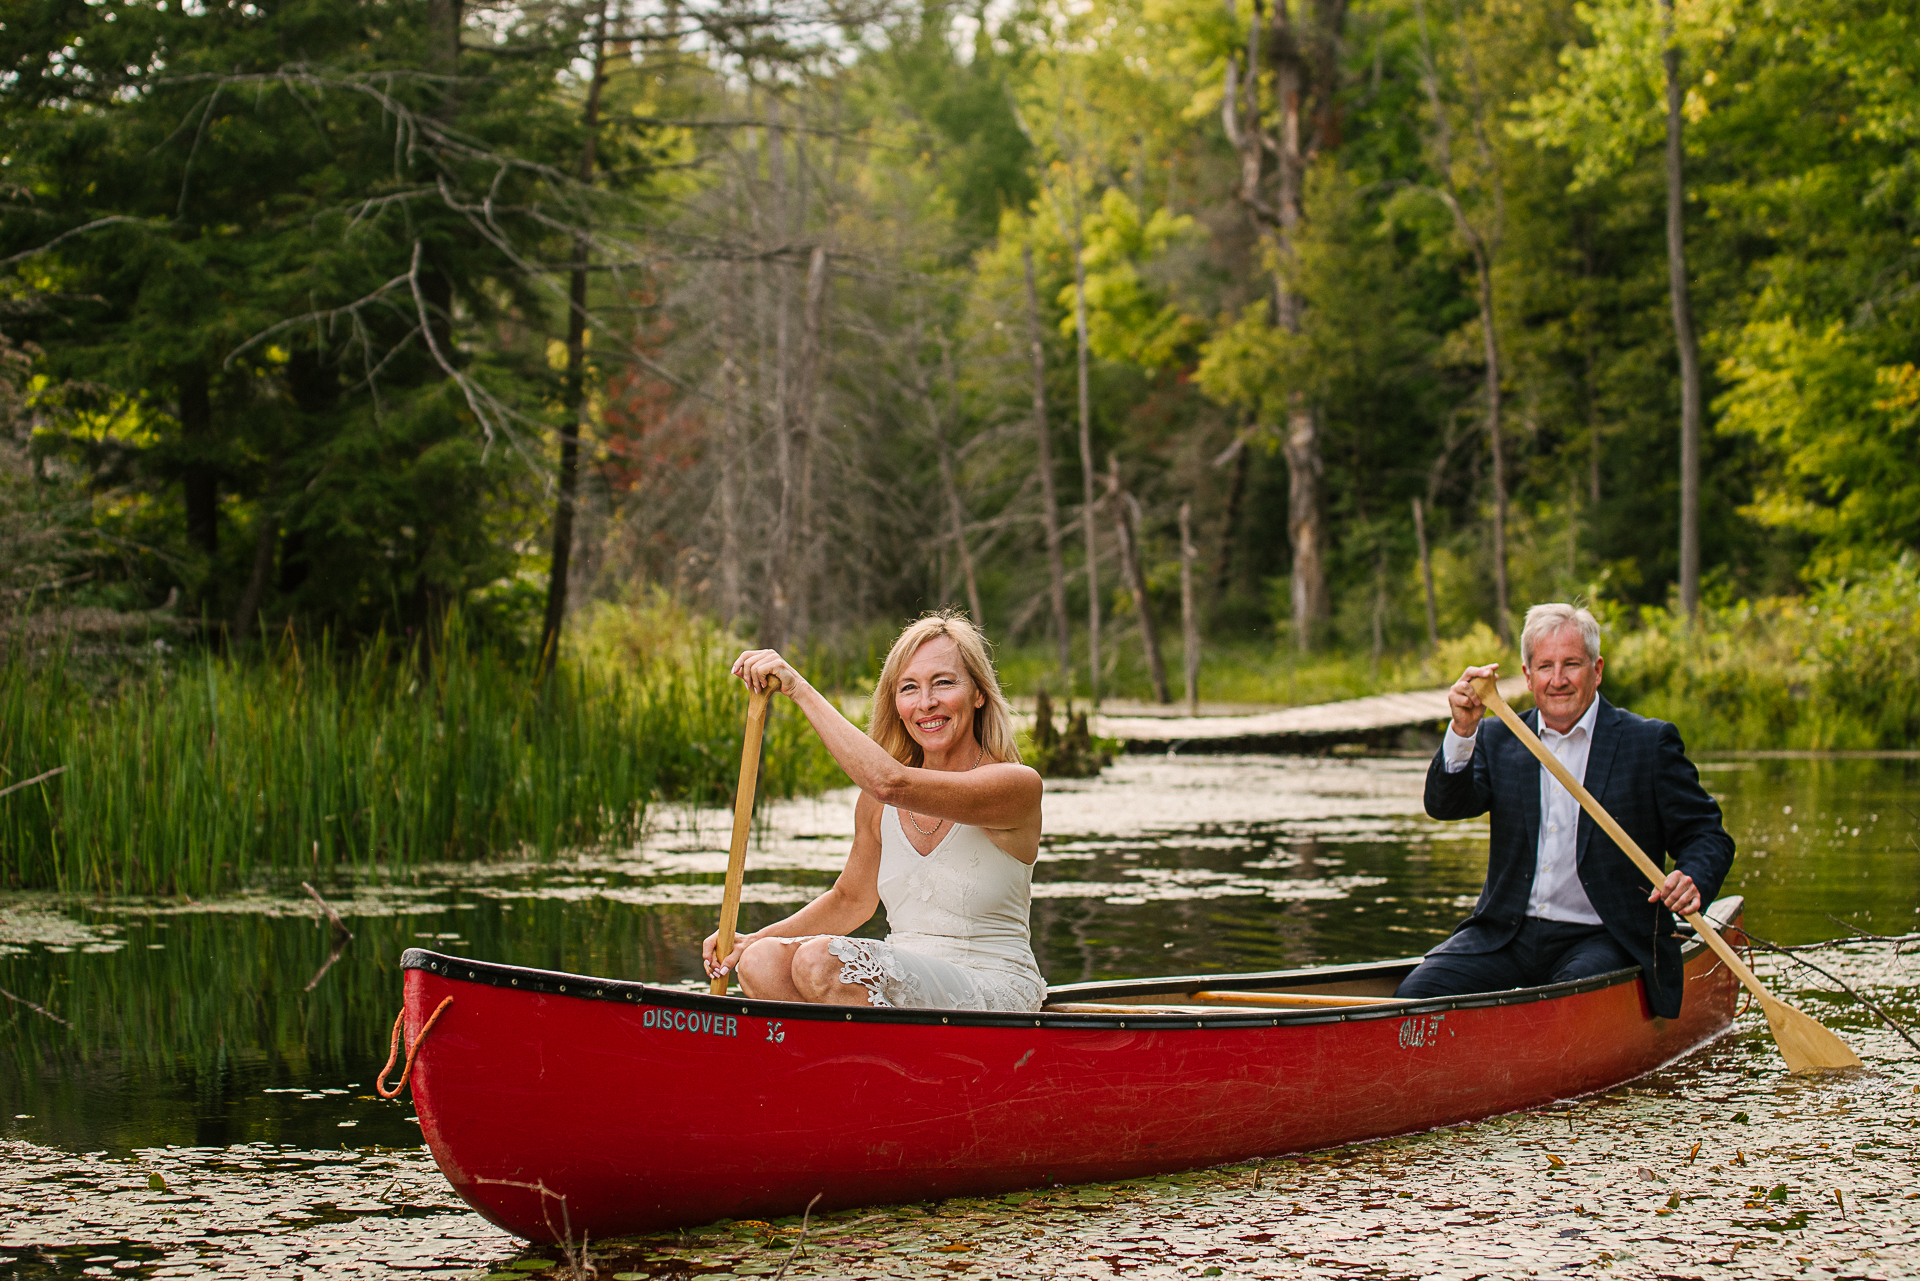 Backyard Elopement Images from Ontario | Paying homage to one of their favorite pastimes, being on the water